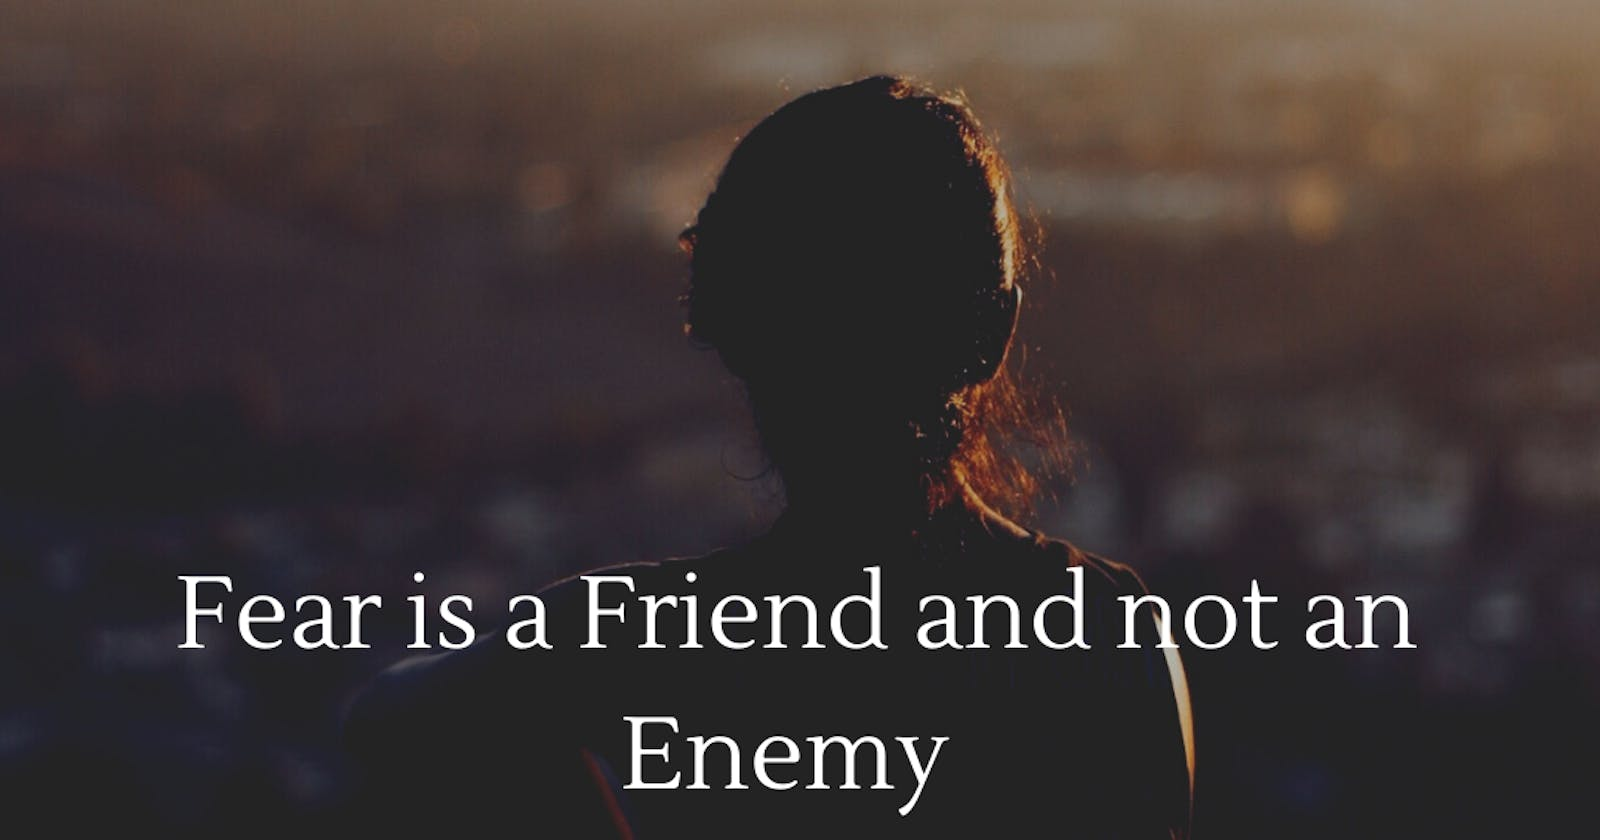 Fear is a Friend and not a Foe